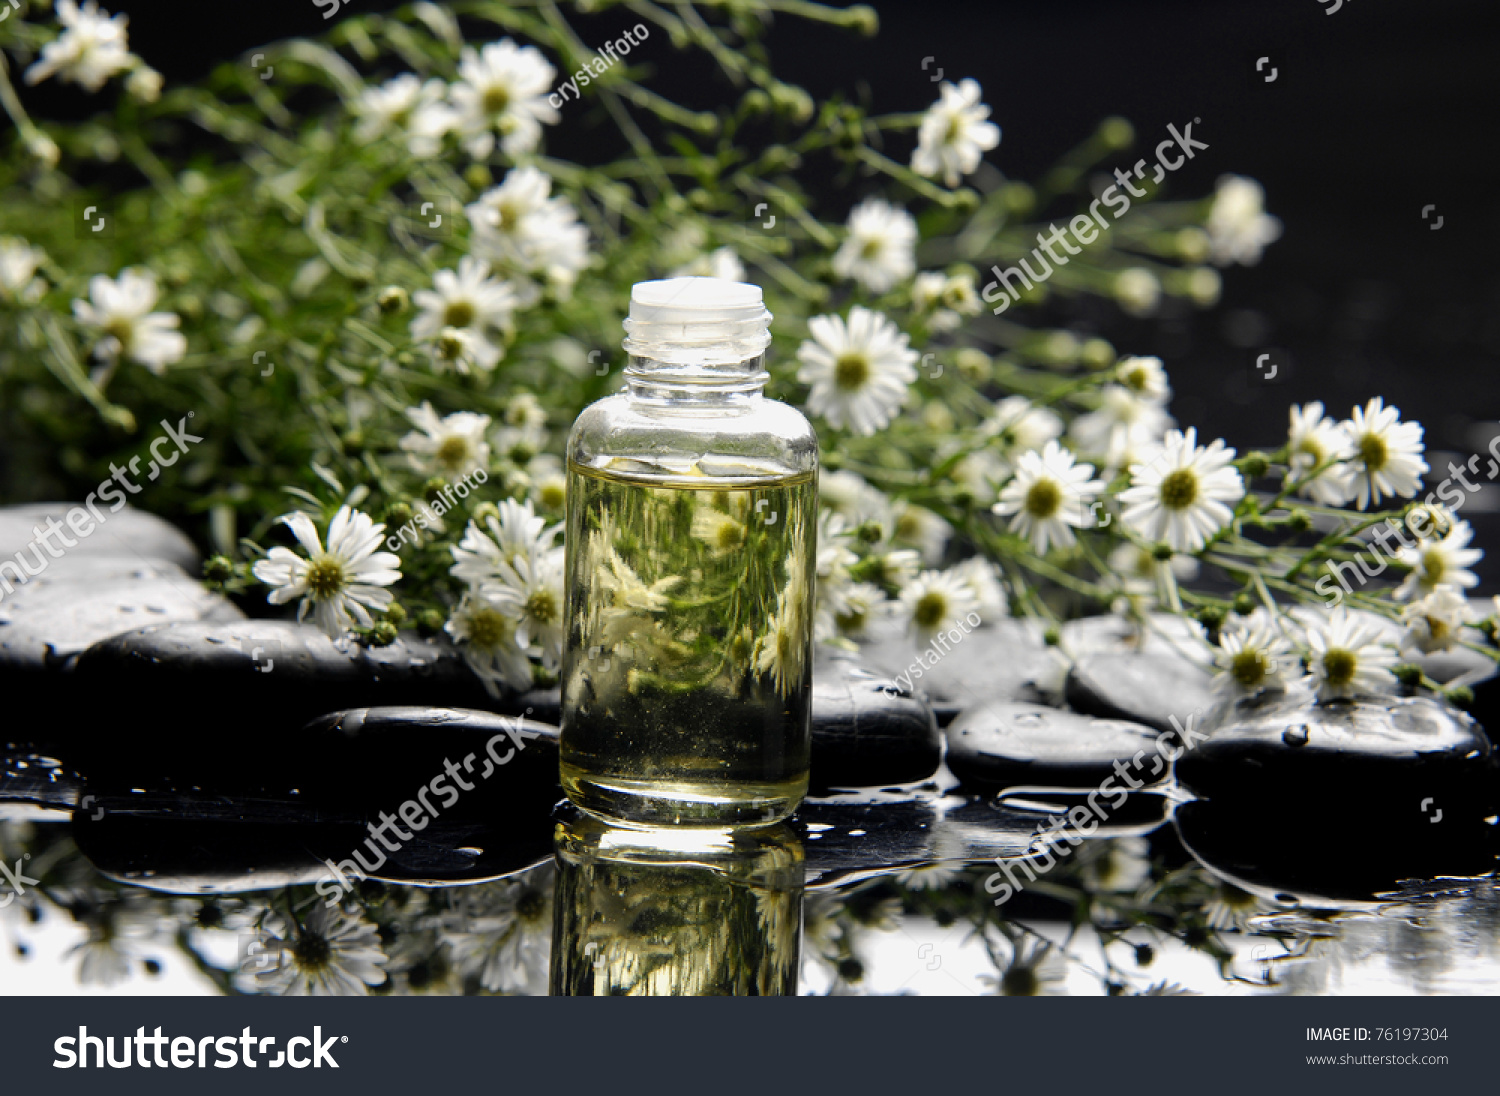 White flower analgesic oil image collections flower decoration ideas white flower analgesic oil choice image flower decoration ideas old fashioned chinese white flower oil picture mightylinksfo